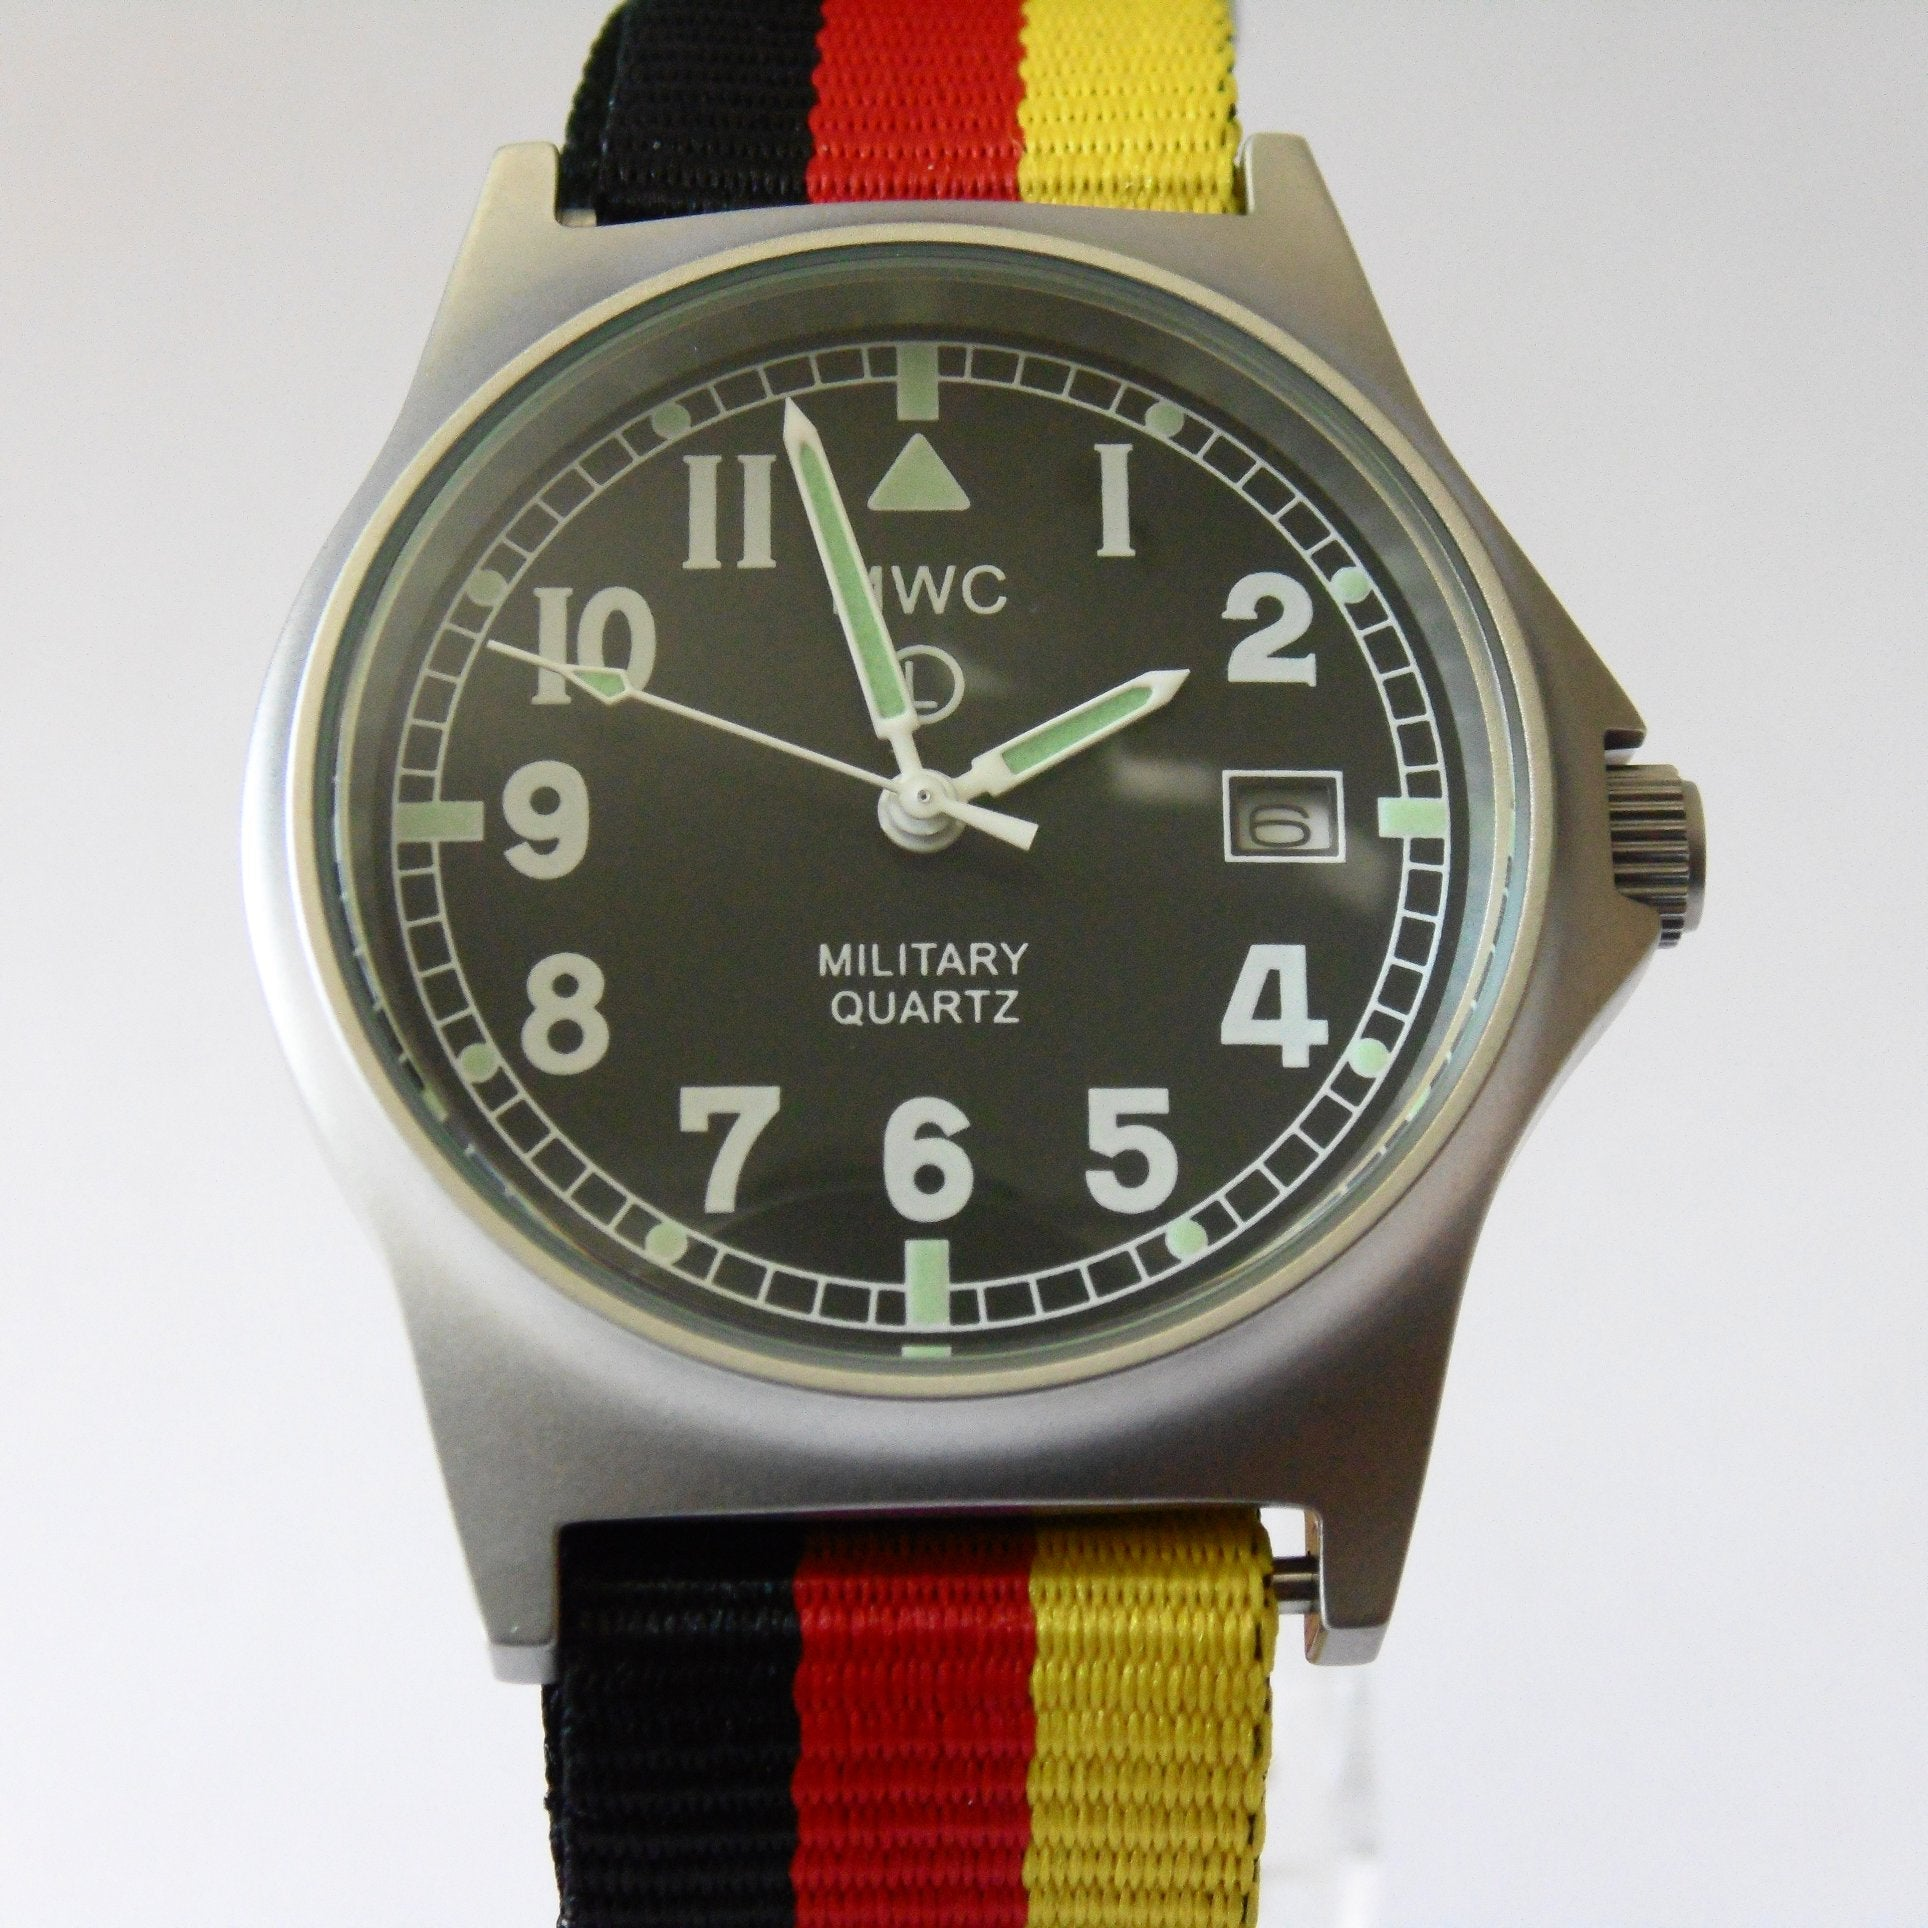 market item quartz global in en of design germany rakuten made store german junkersbauhaus watch watches katsuboya